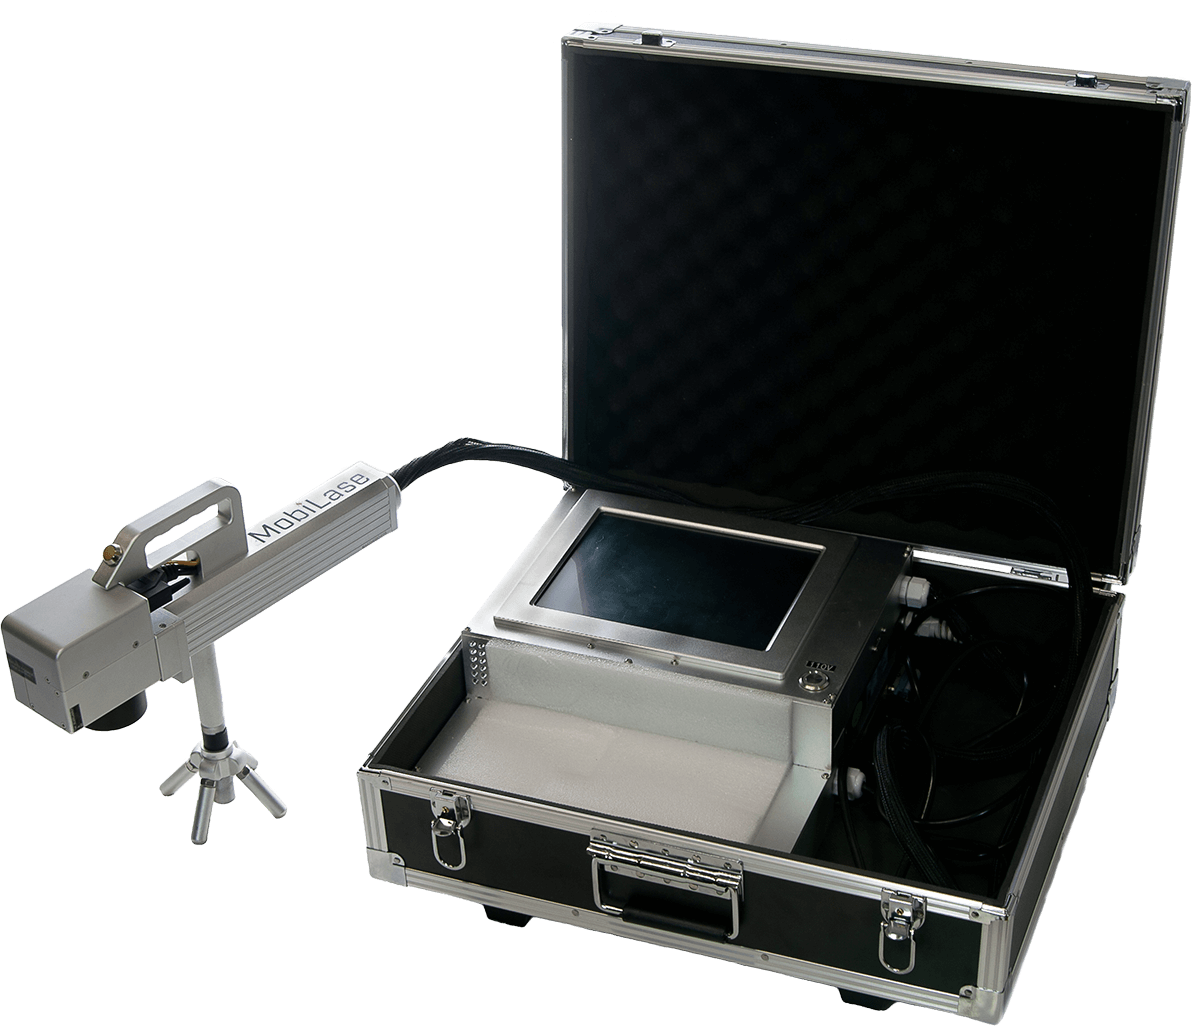 MobiLase - The Industrial Fiber Laser Marker in a Suitcase